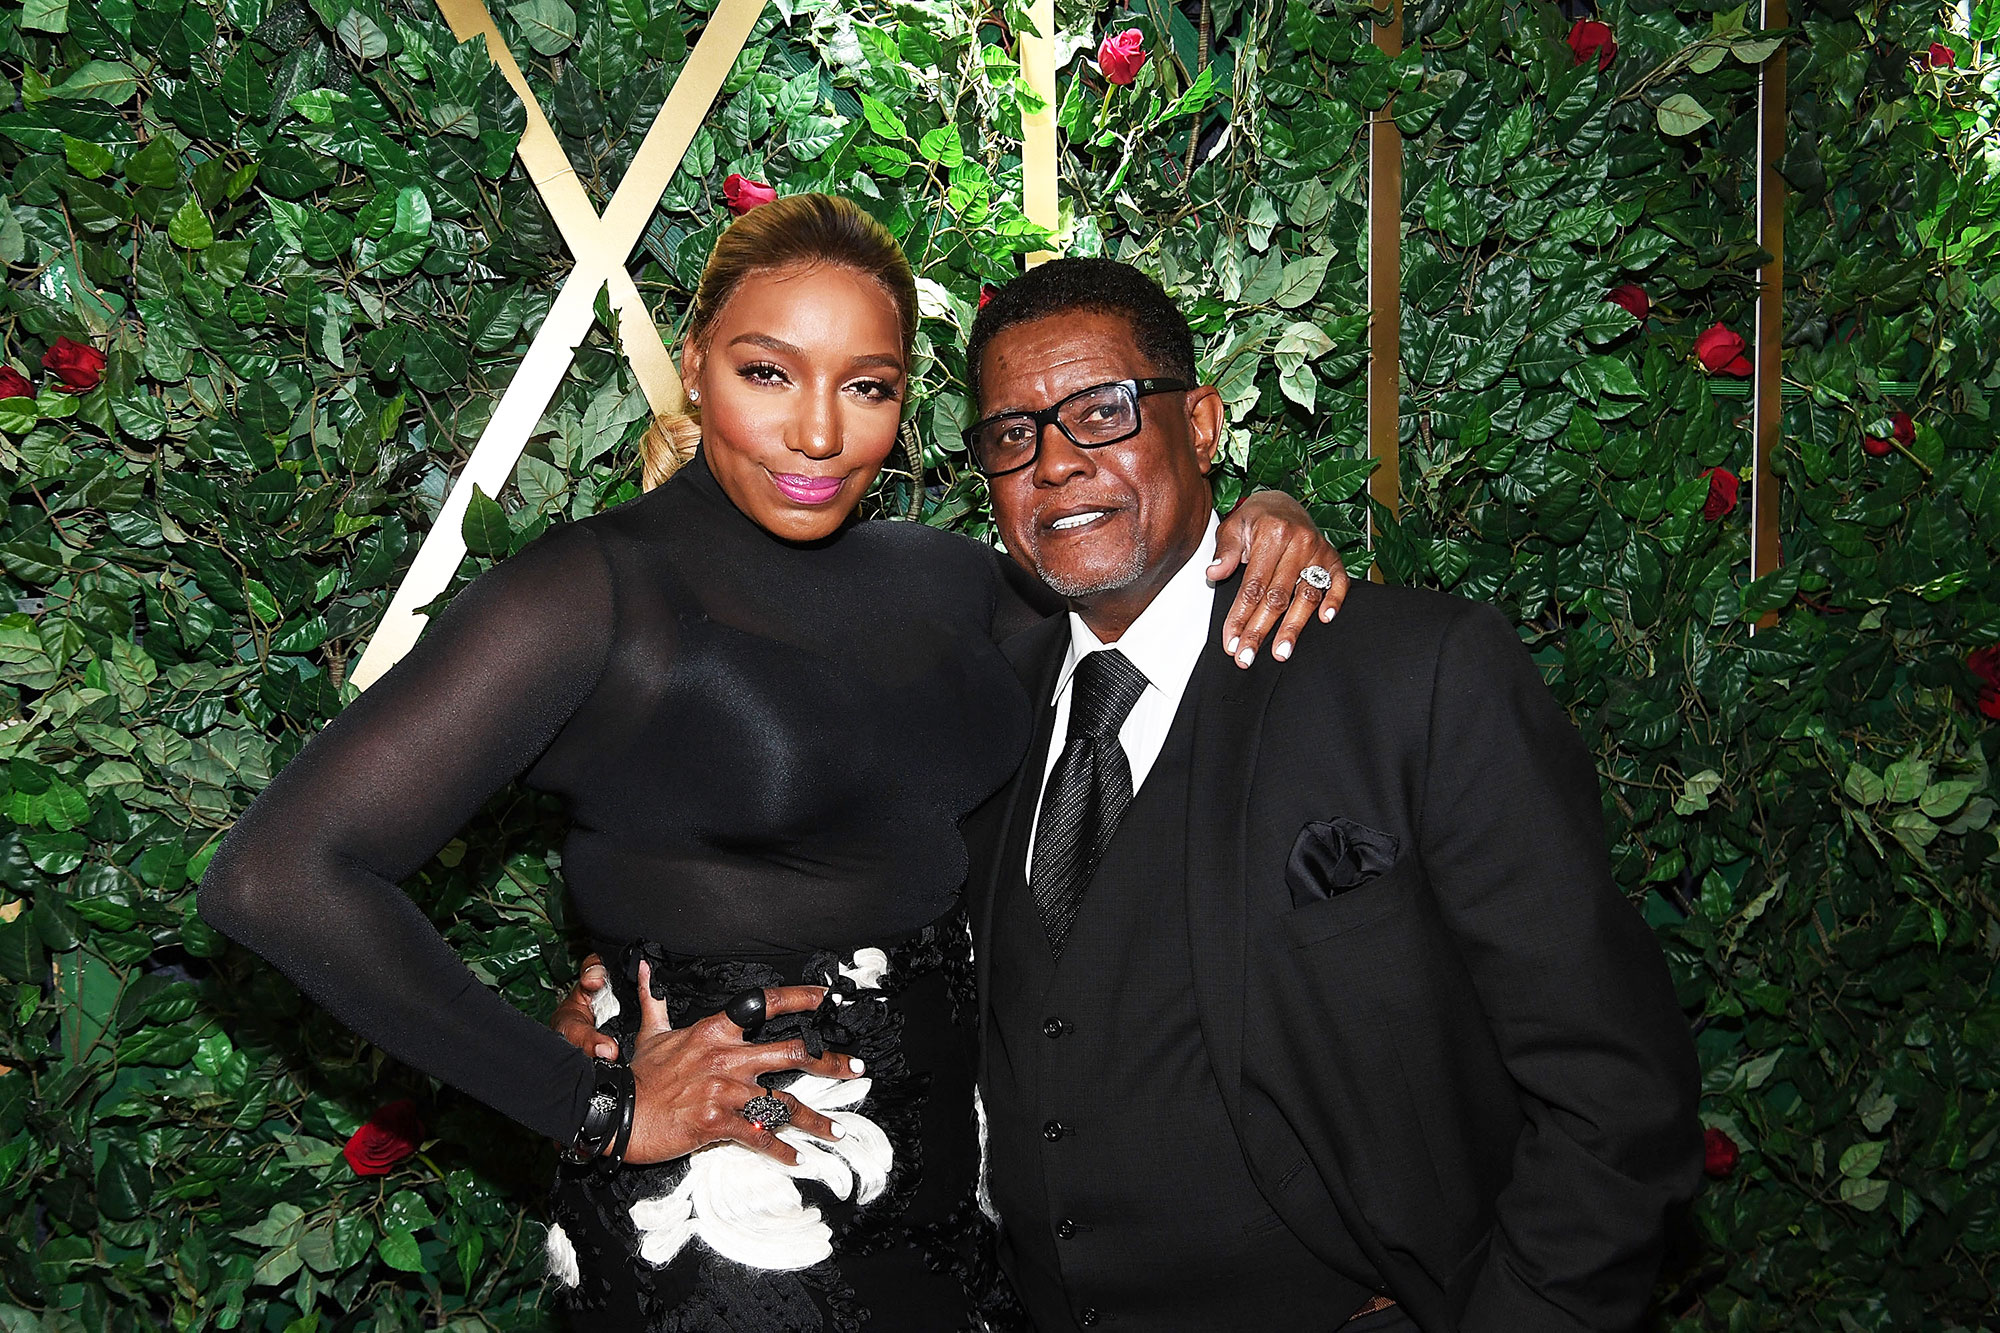 NeNe Leakes Is Having The Time Of Her Life Dancing With Her Husband Gregg Leakes - Fans Love To See The Couple So Happy And Careless